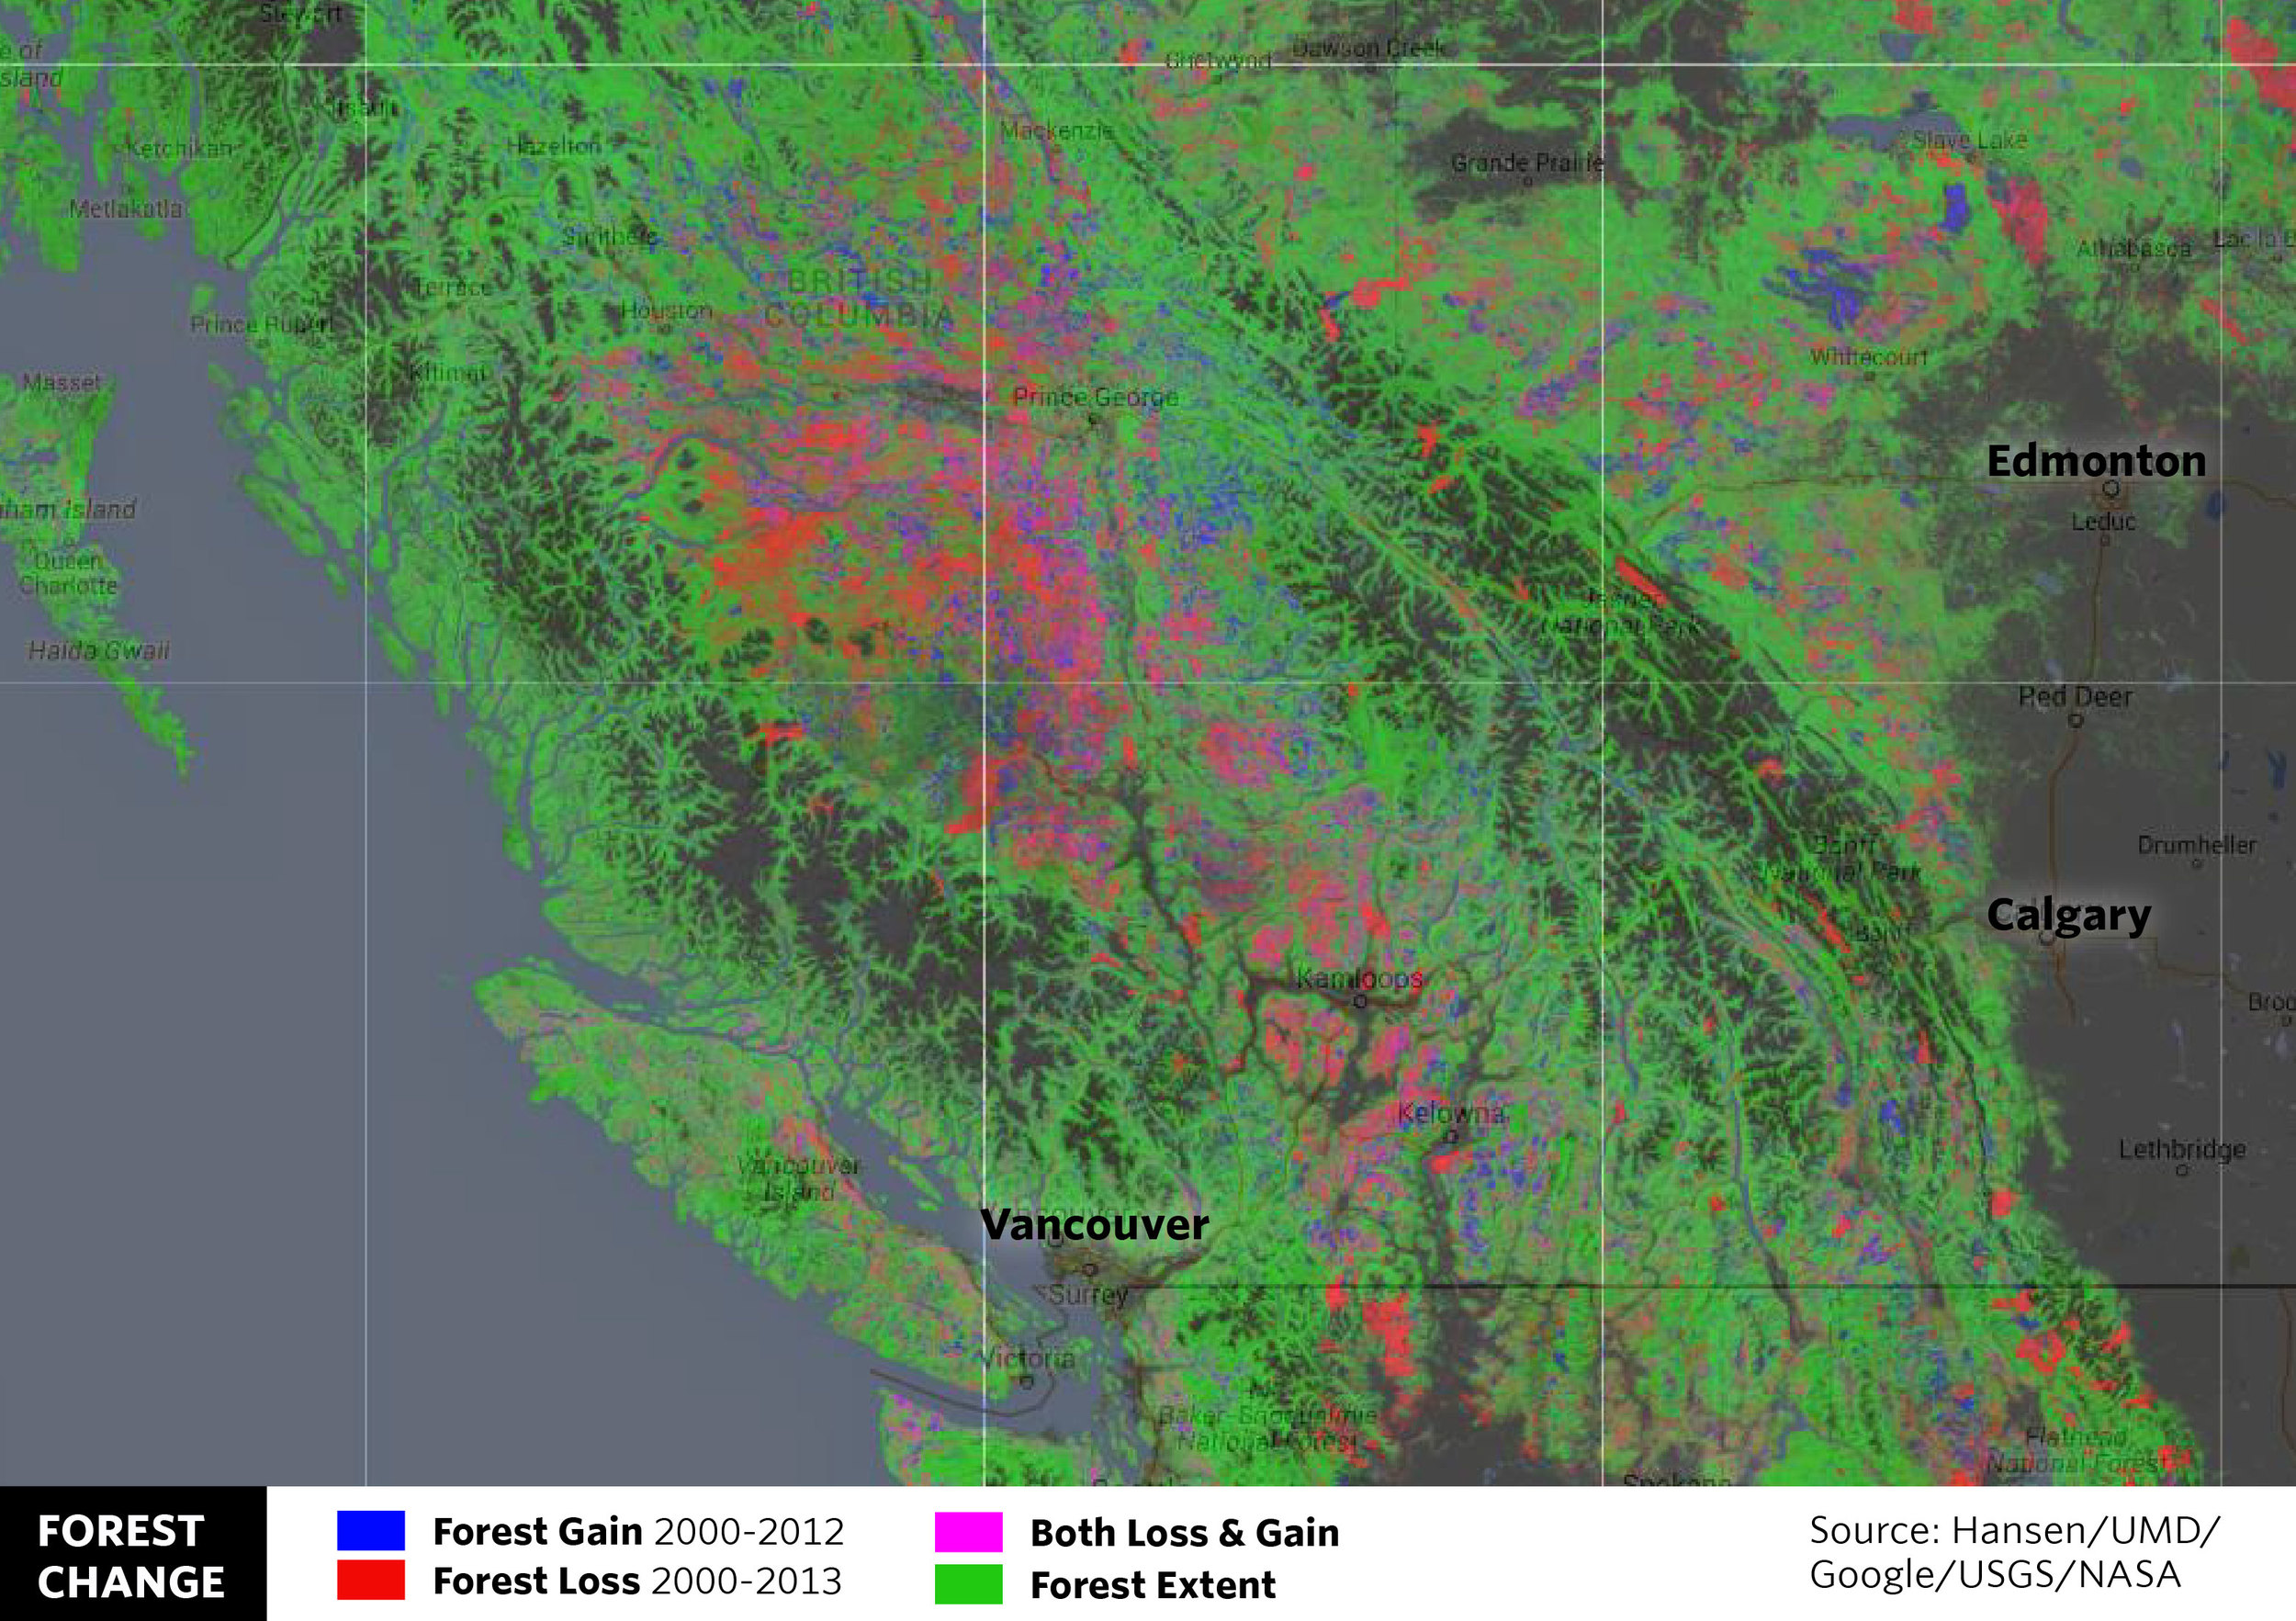 BRITISH COLUMBIA: Forest loss in red is likely from pine beetle outbreaks in British Columbia.